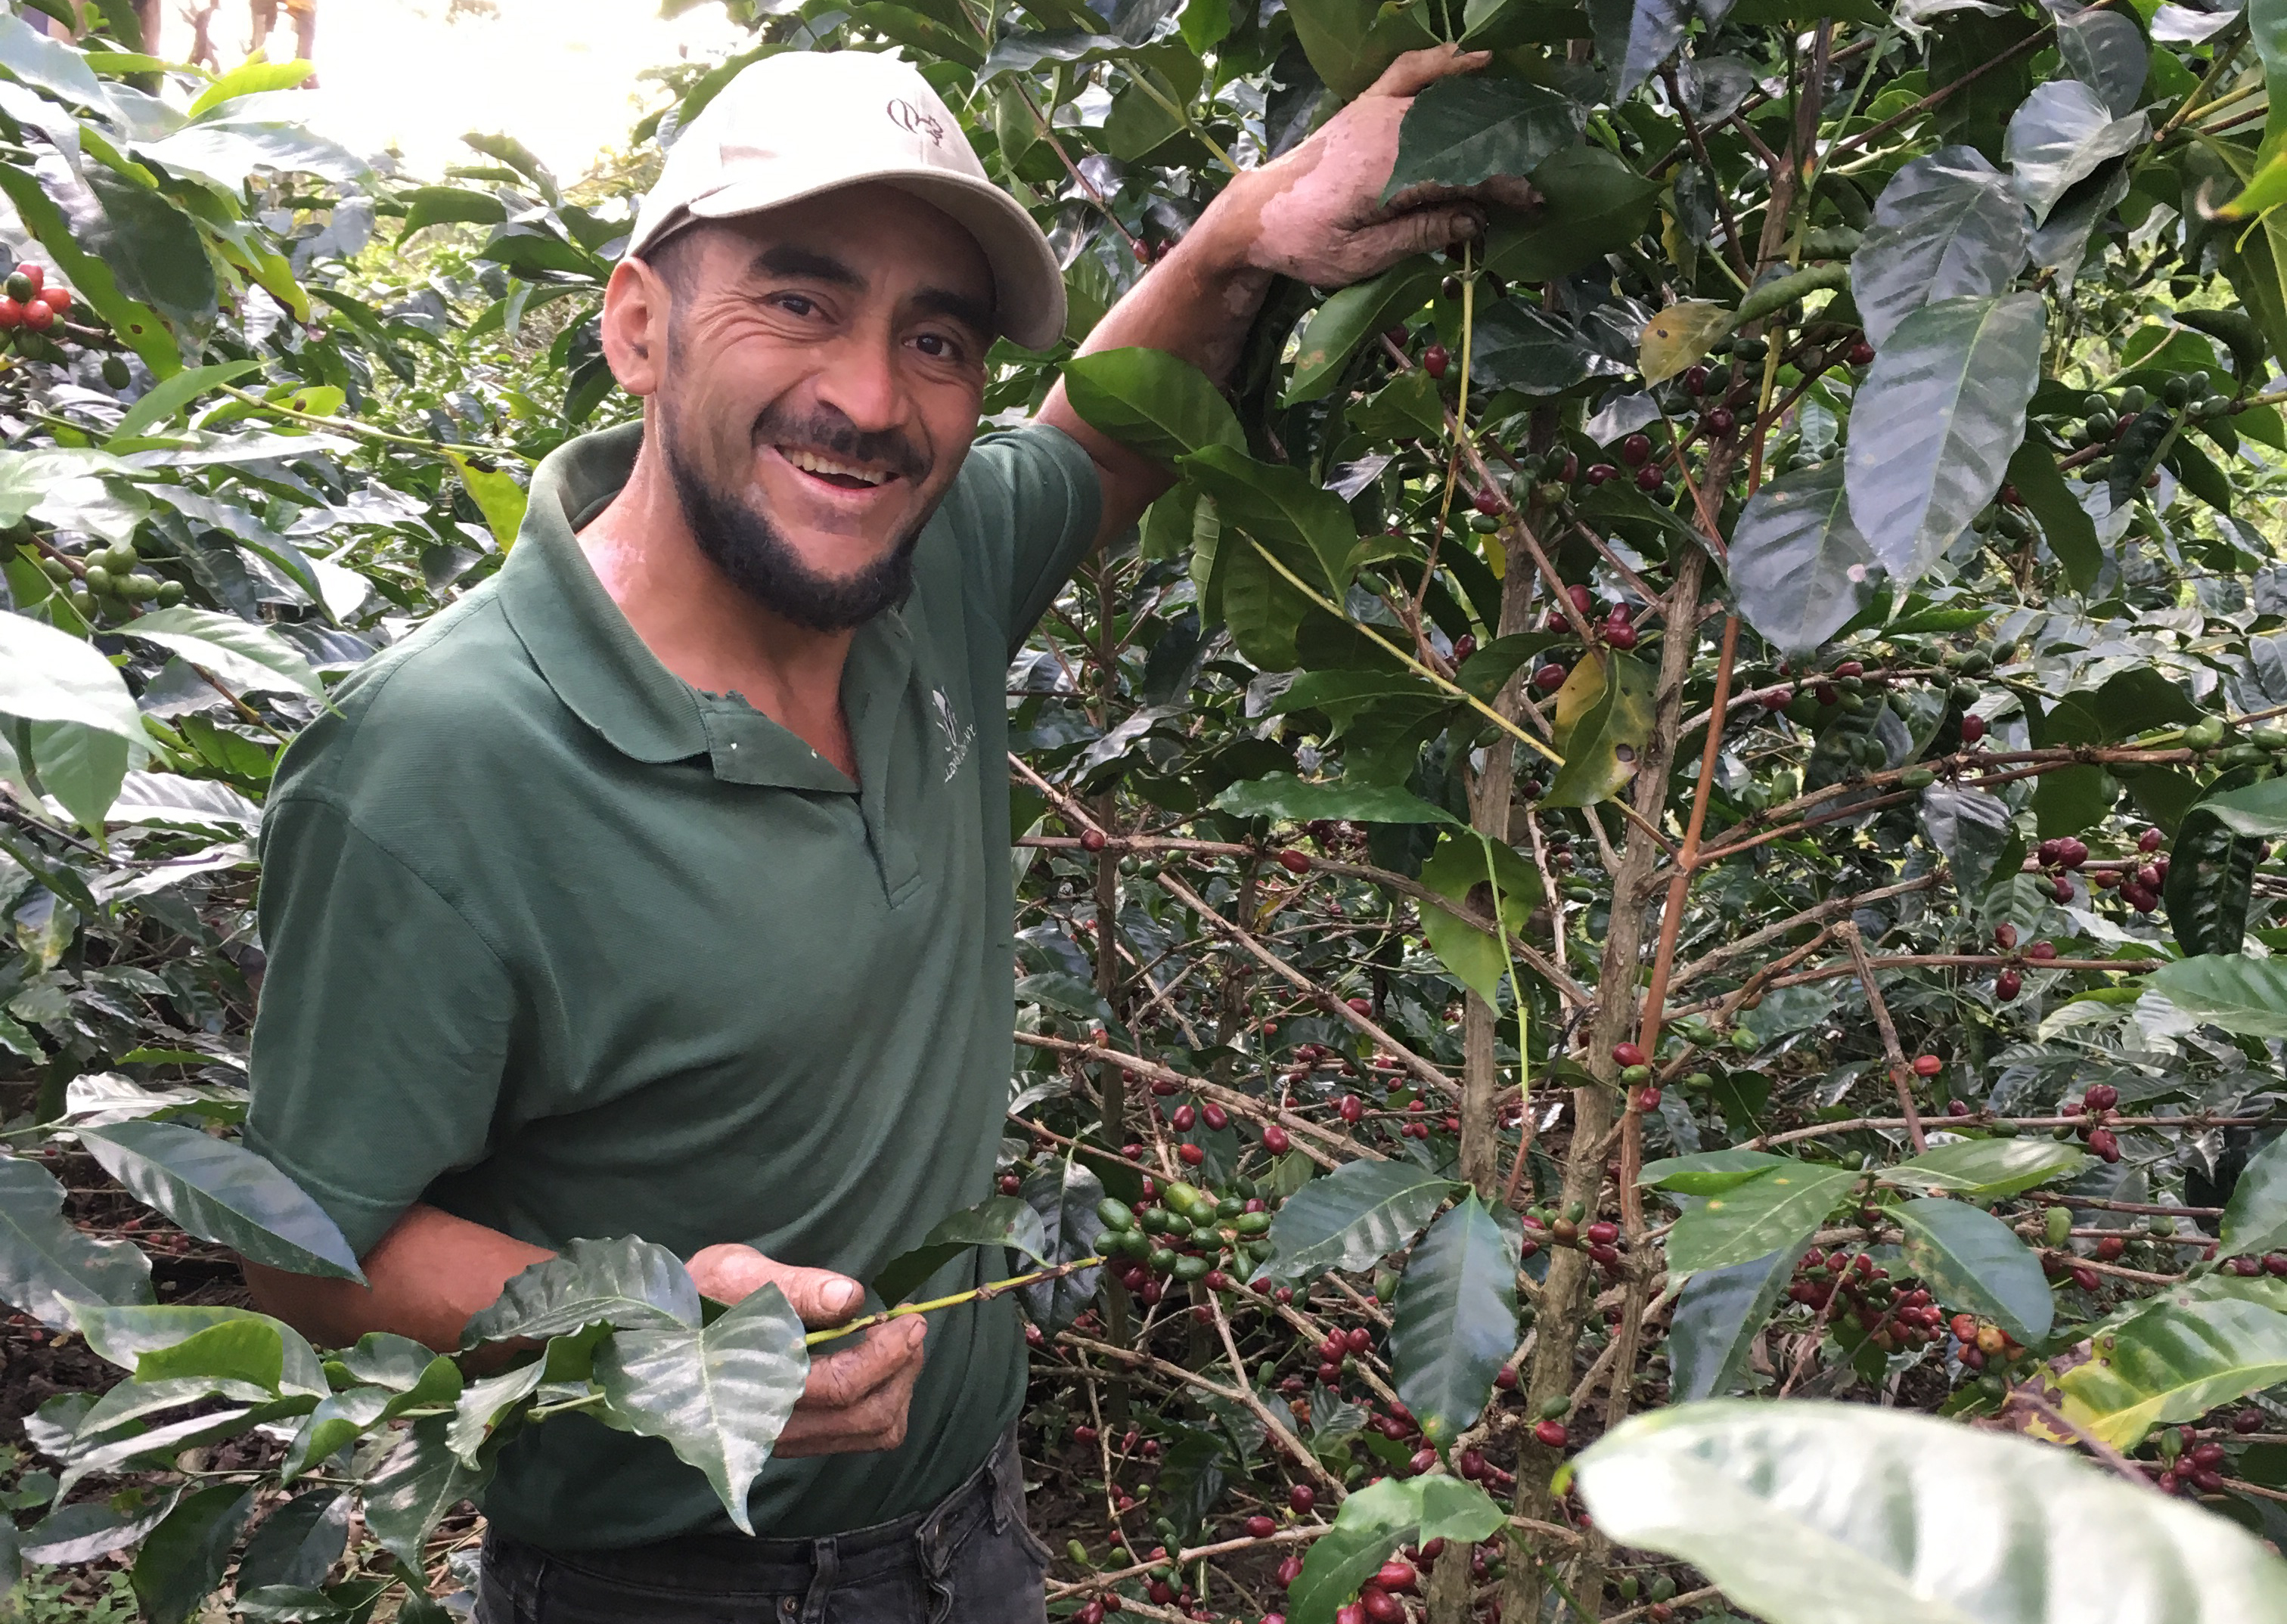 Edwin Contreras of COMSA shows off one of his favorite plants on his farm. Edwin is one of the leaders of COMSA's experimental project in varietal recovery funded through the collaborative.